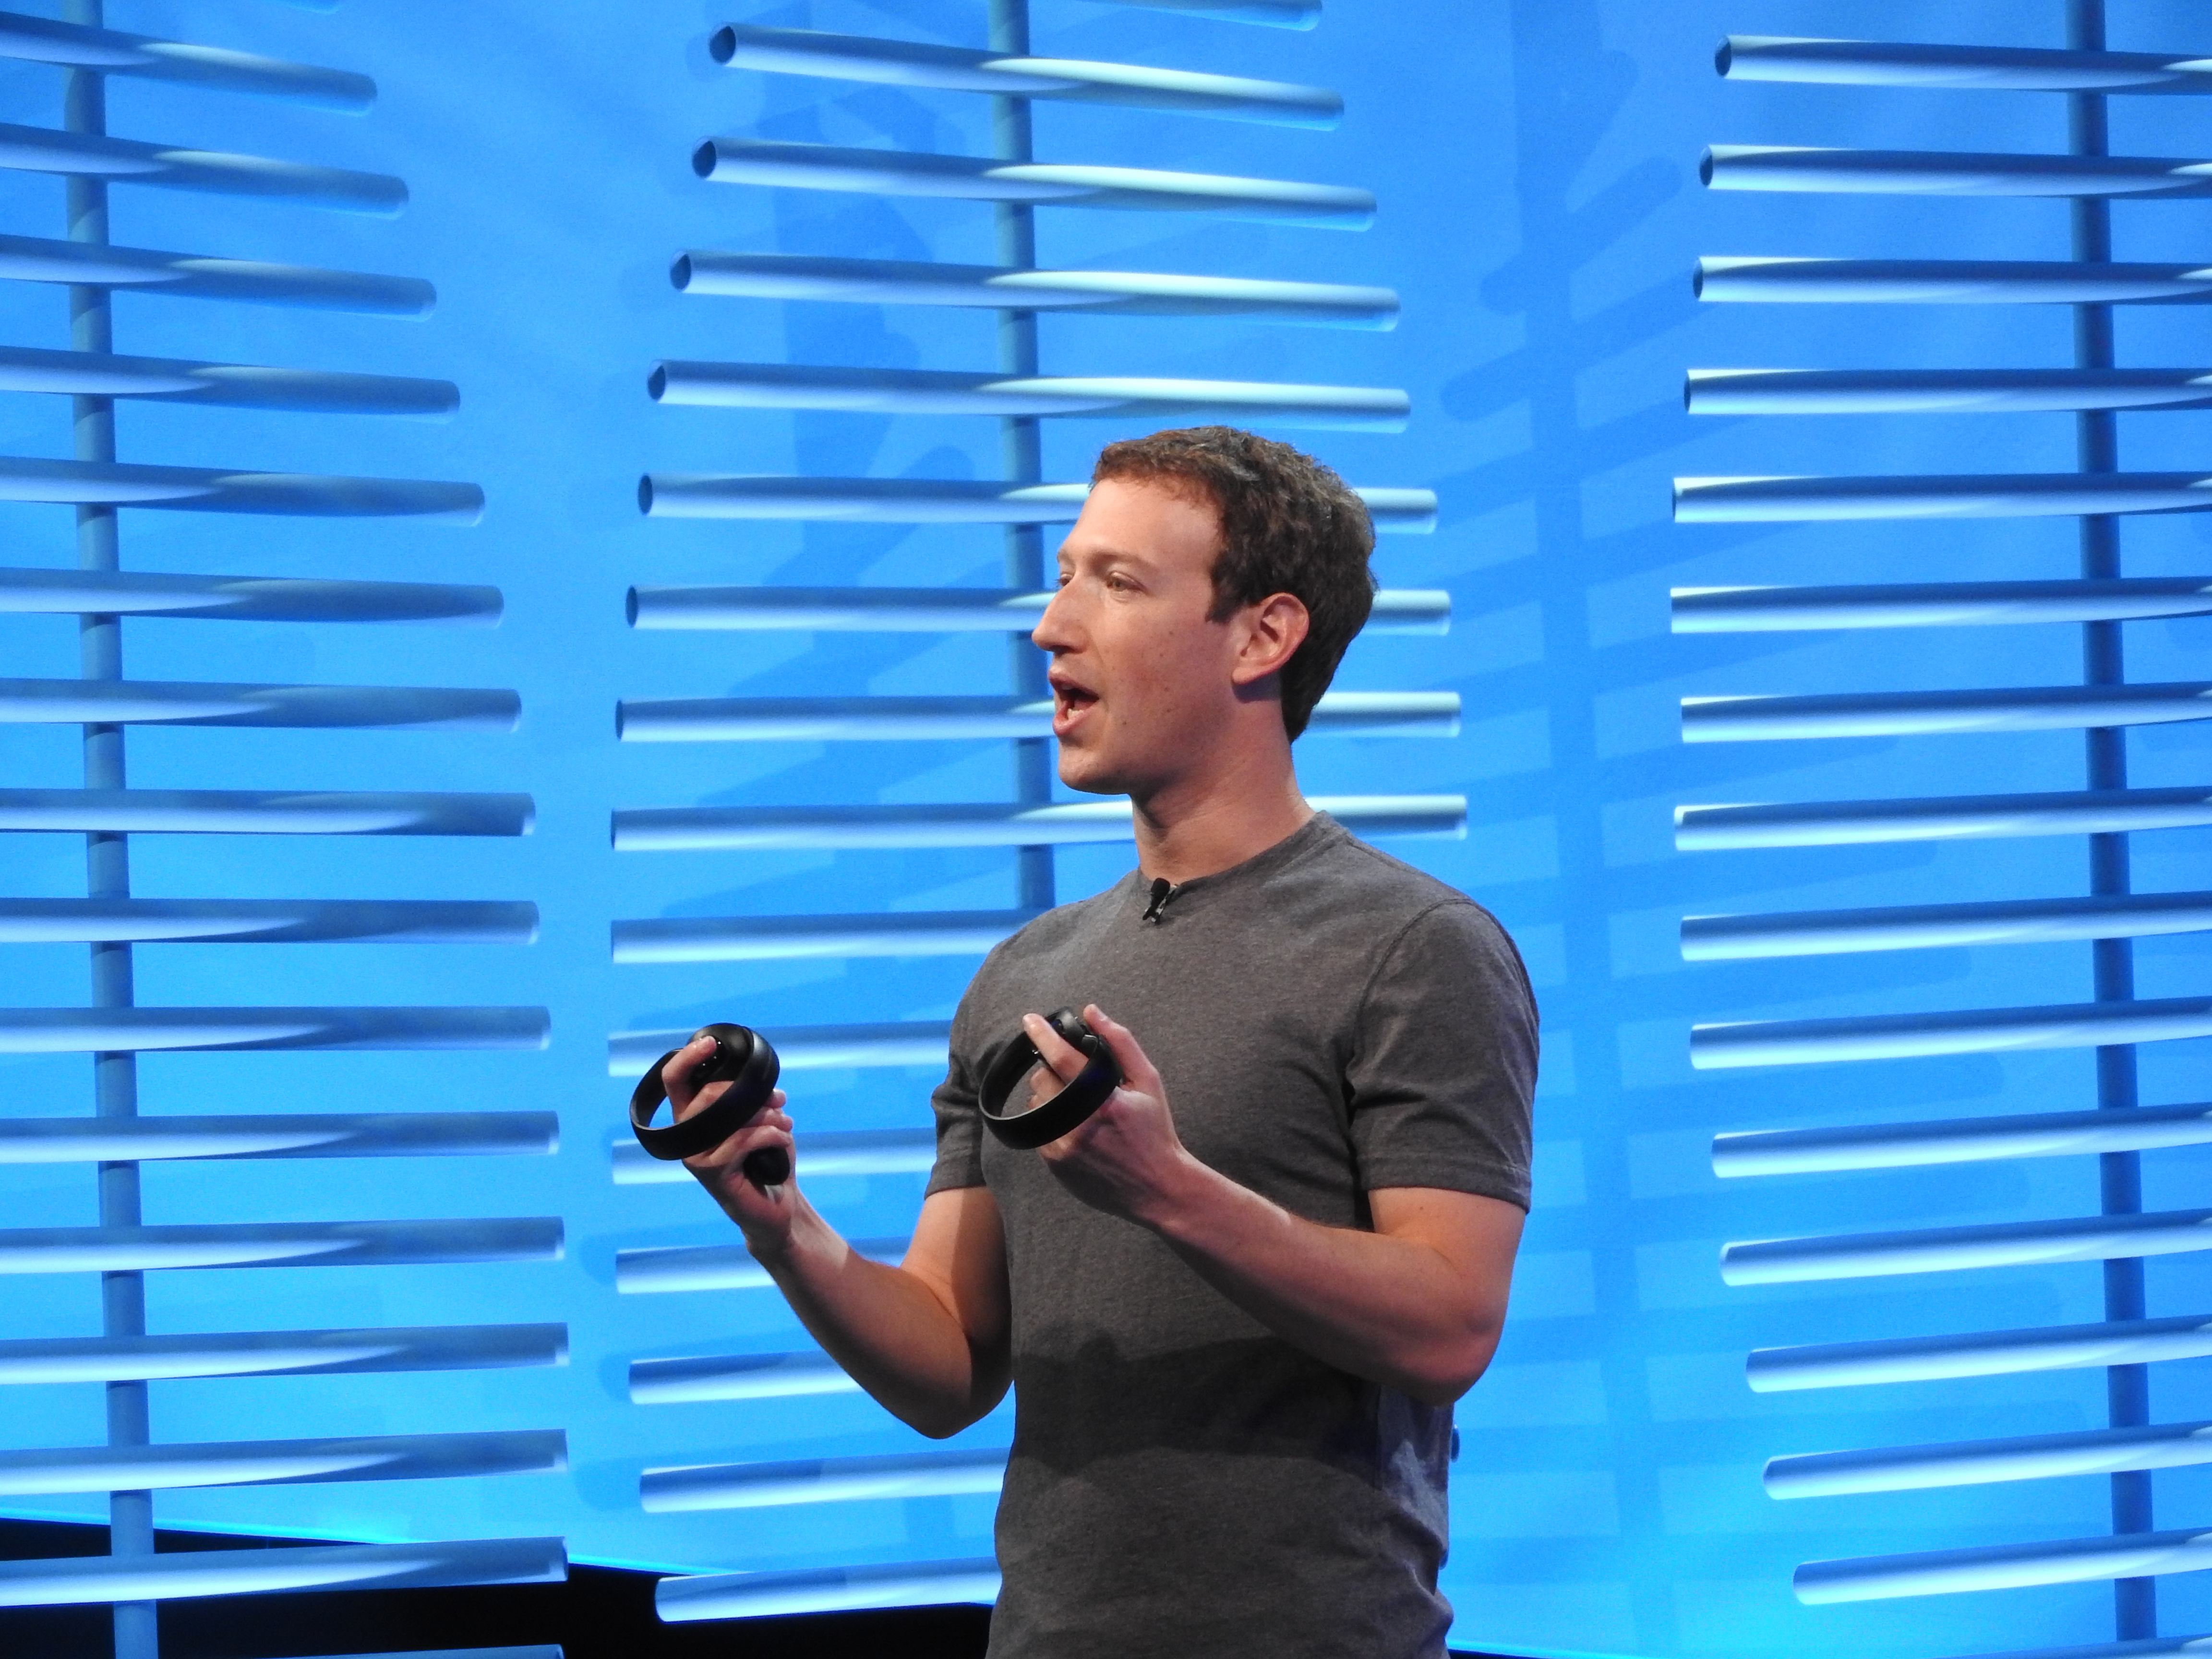 Mark Zuckerberg shows off Oculus Touch